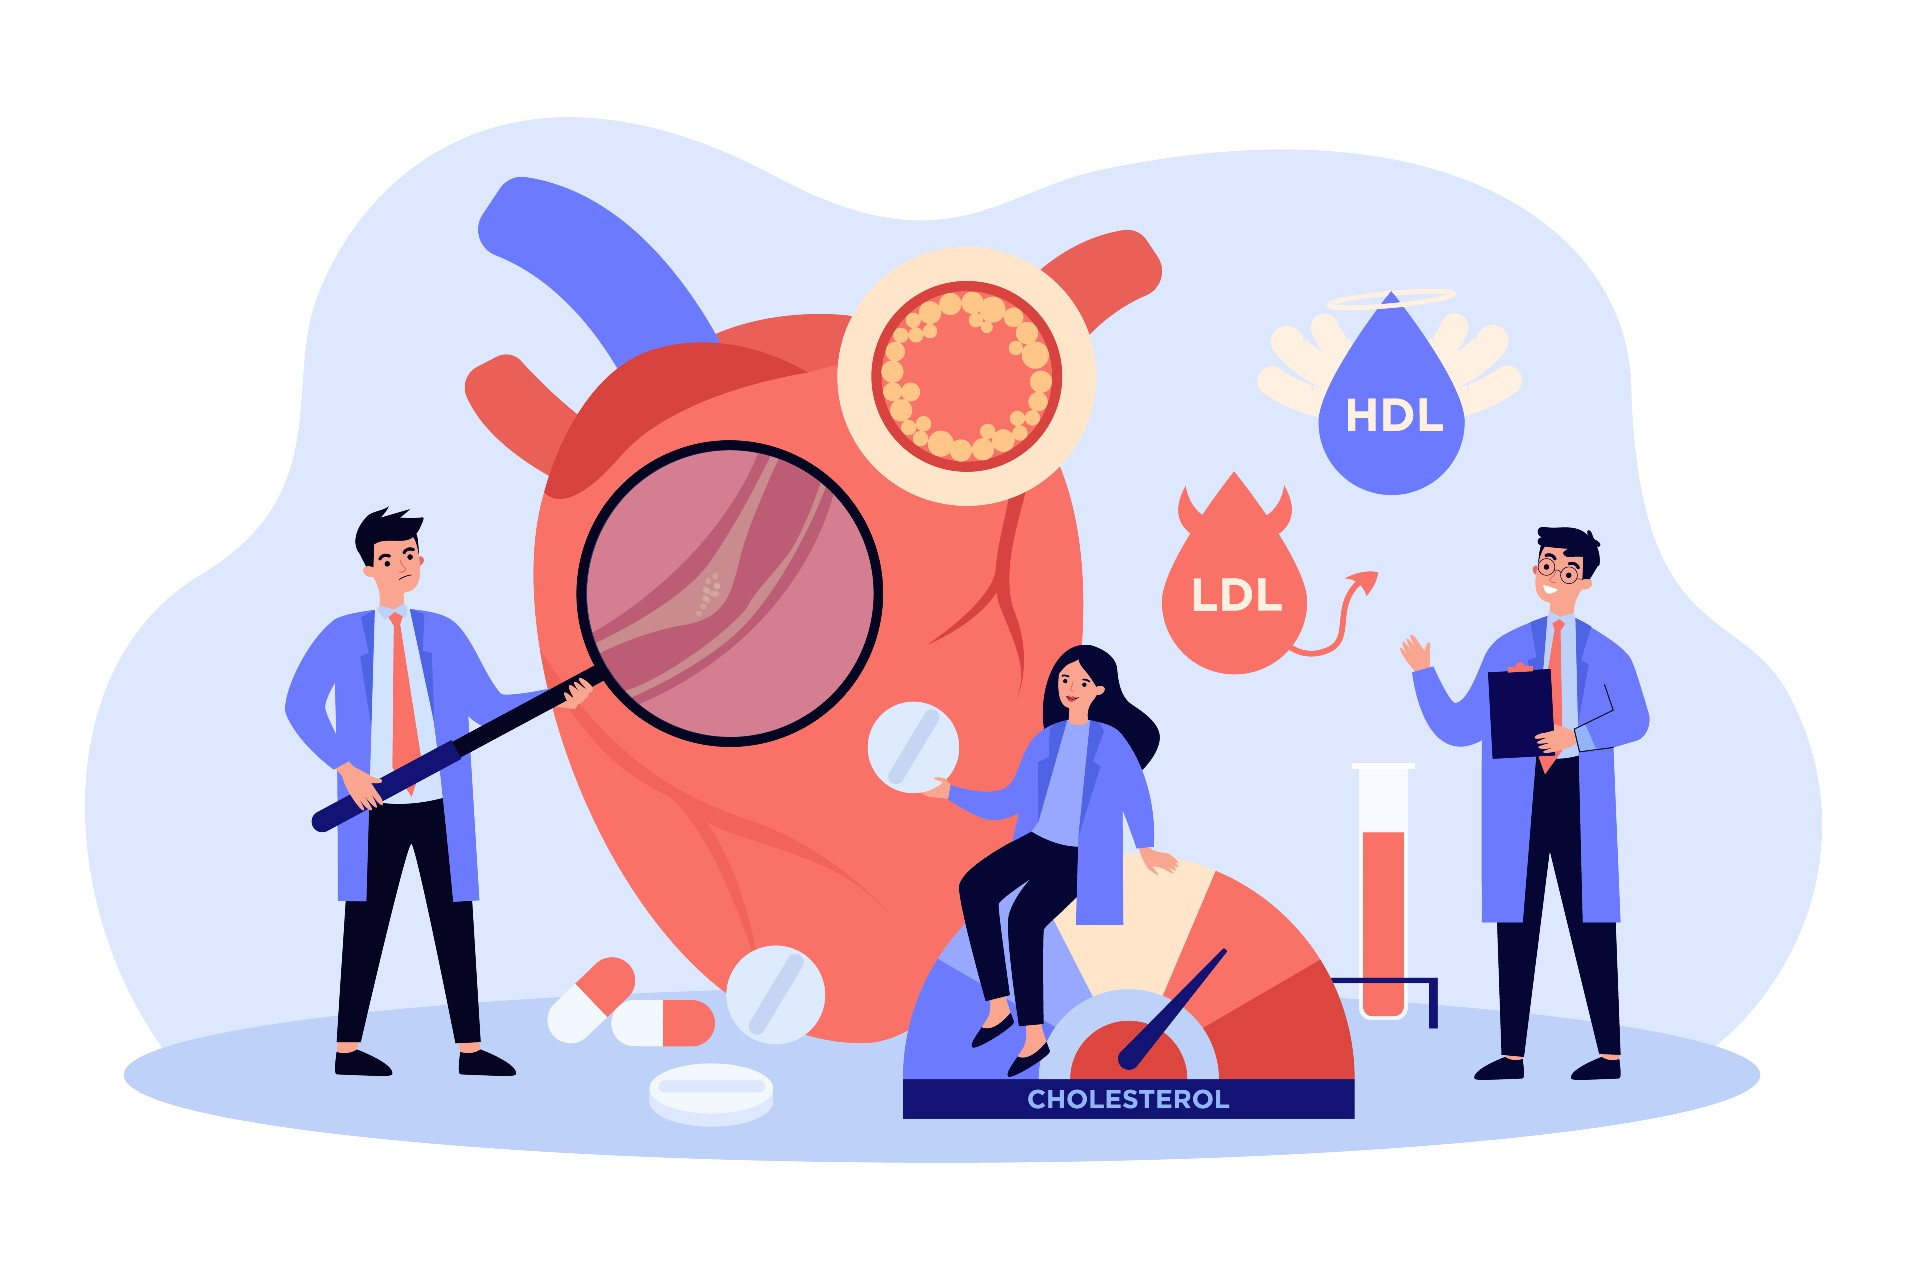 The role of cholesterol